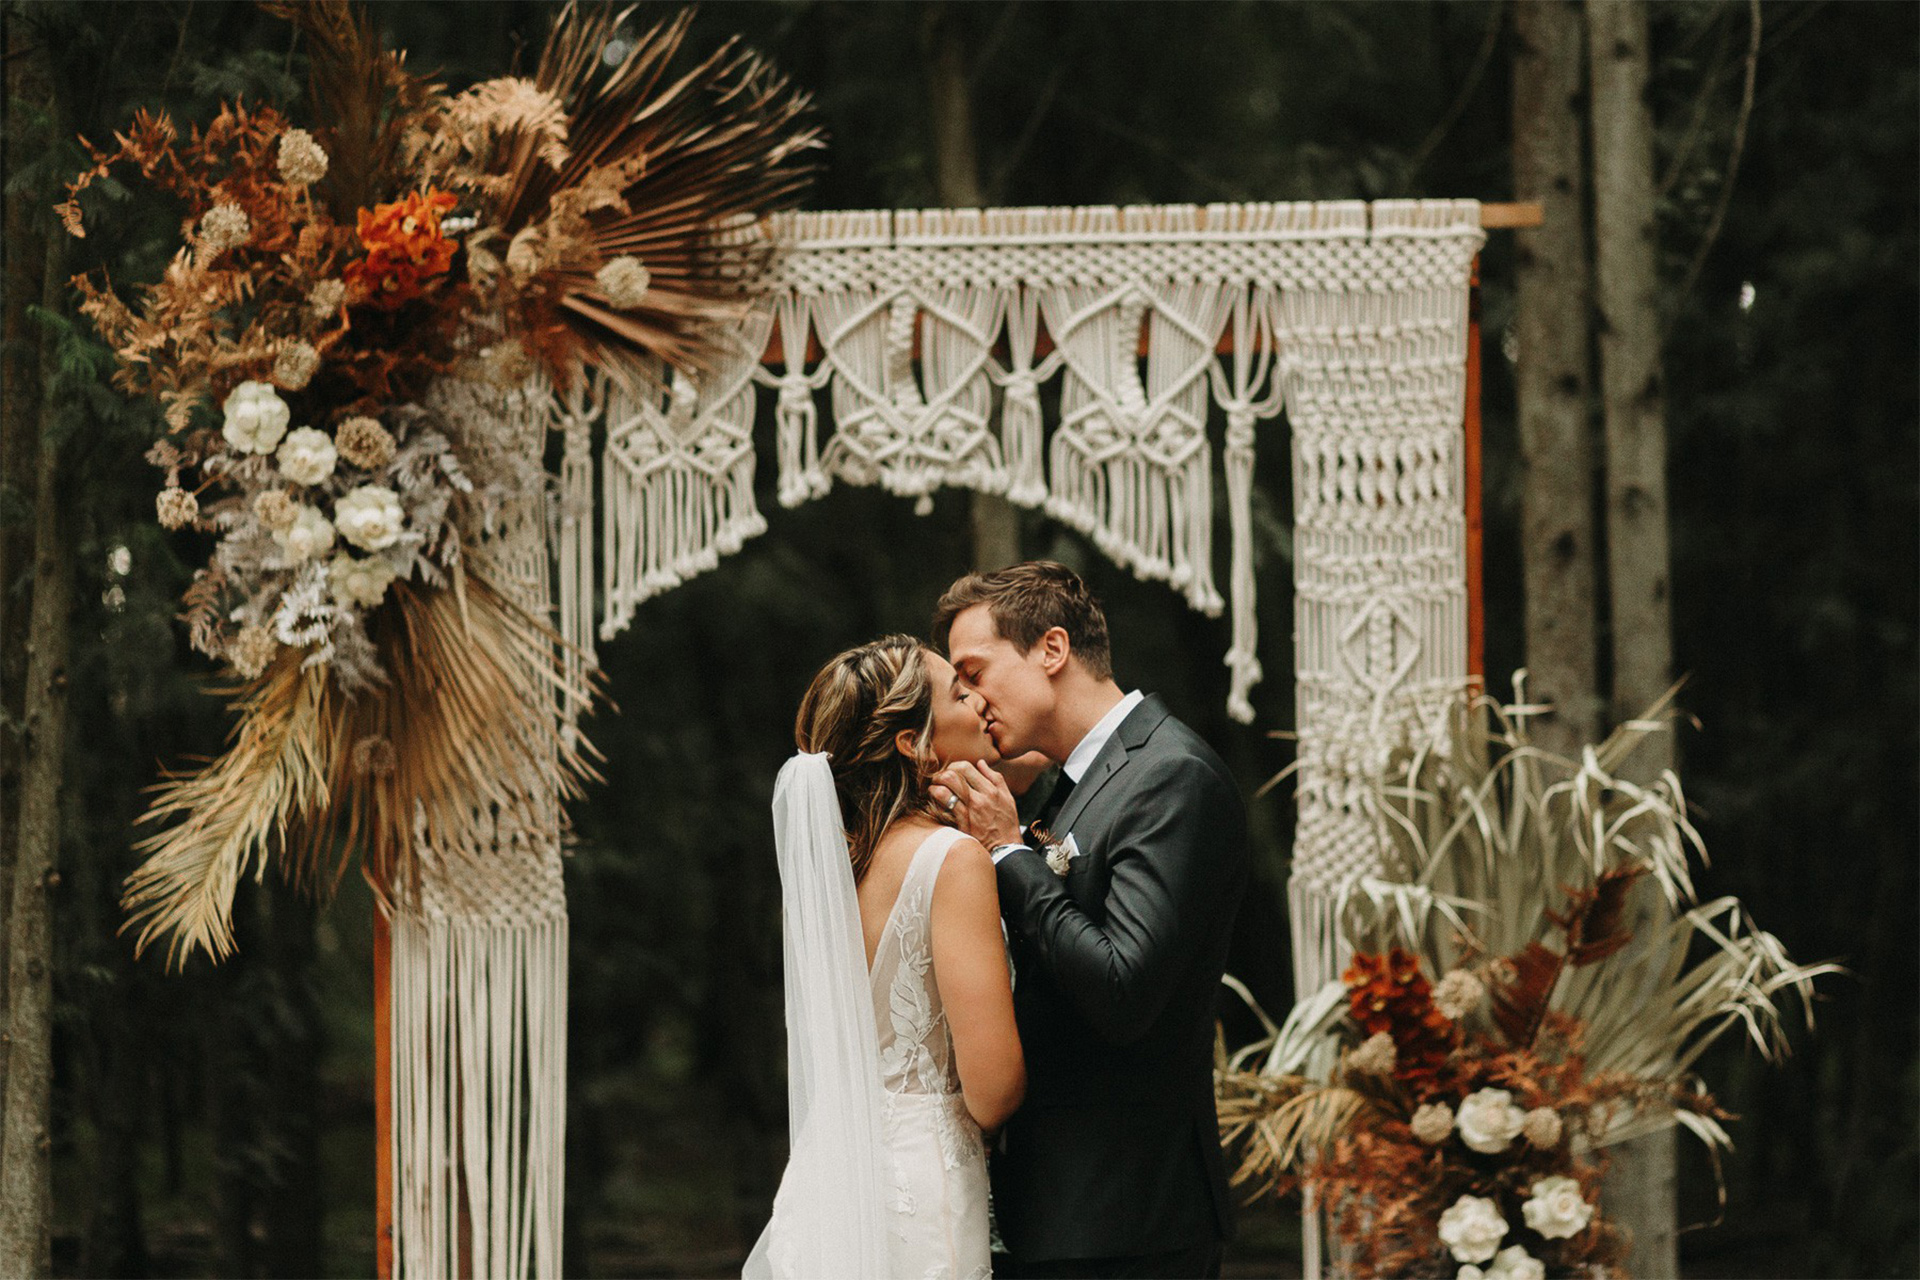 Bride and groom embracing infront of a boho style arch filled with lots of florals